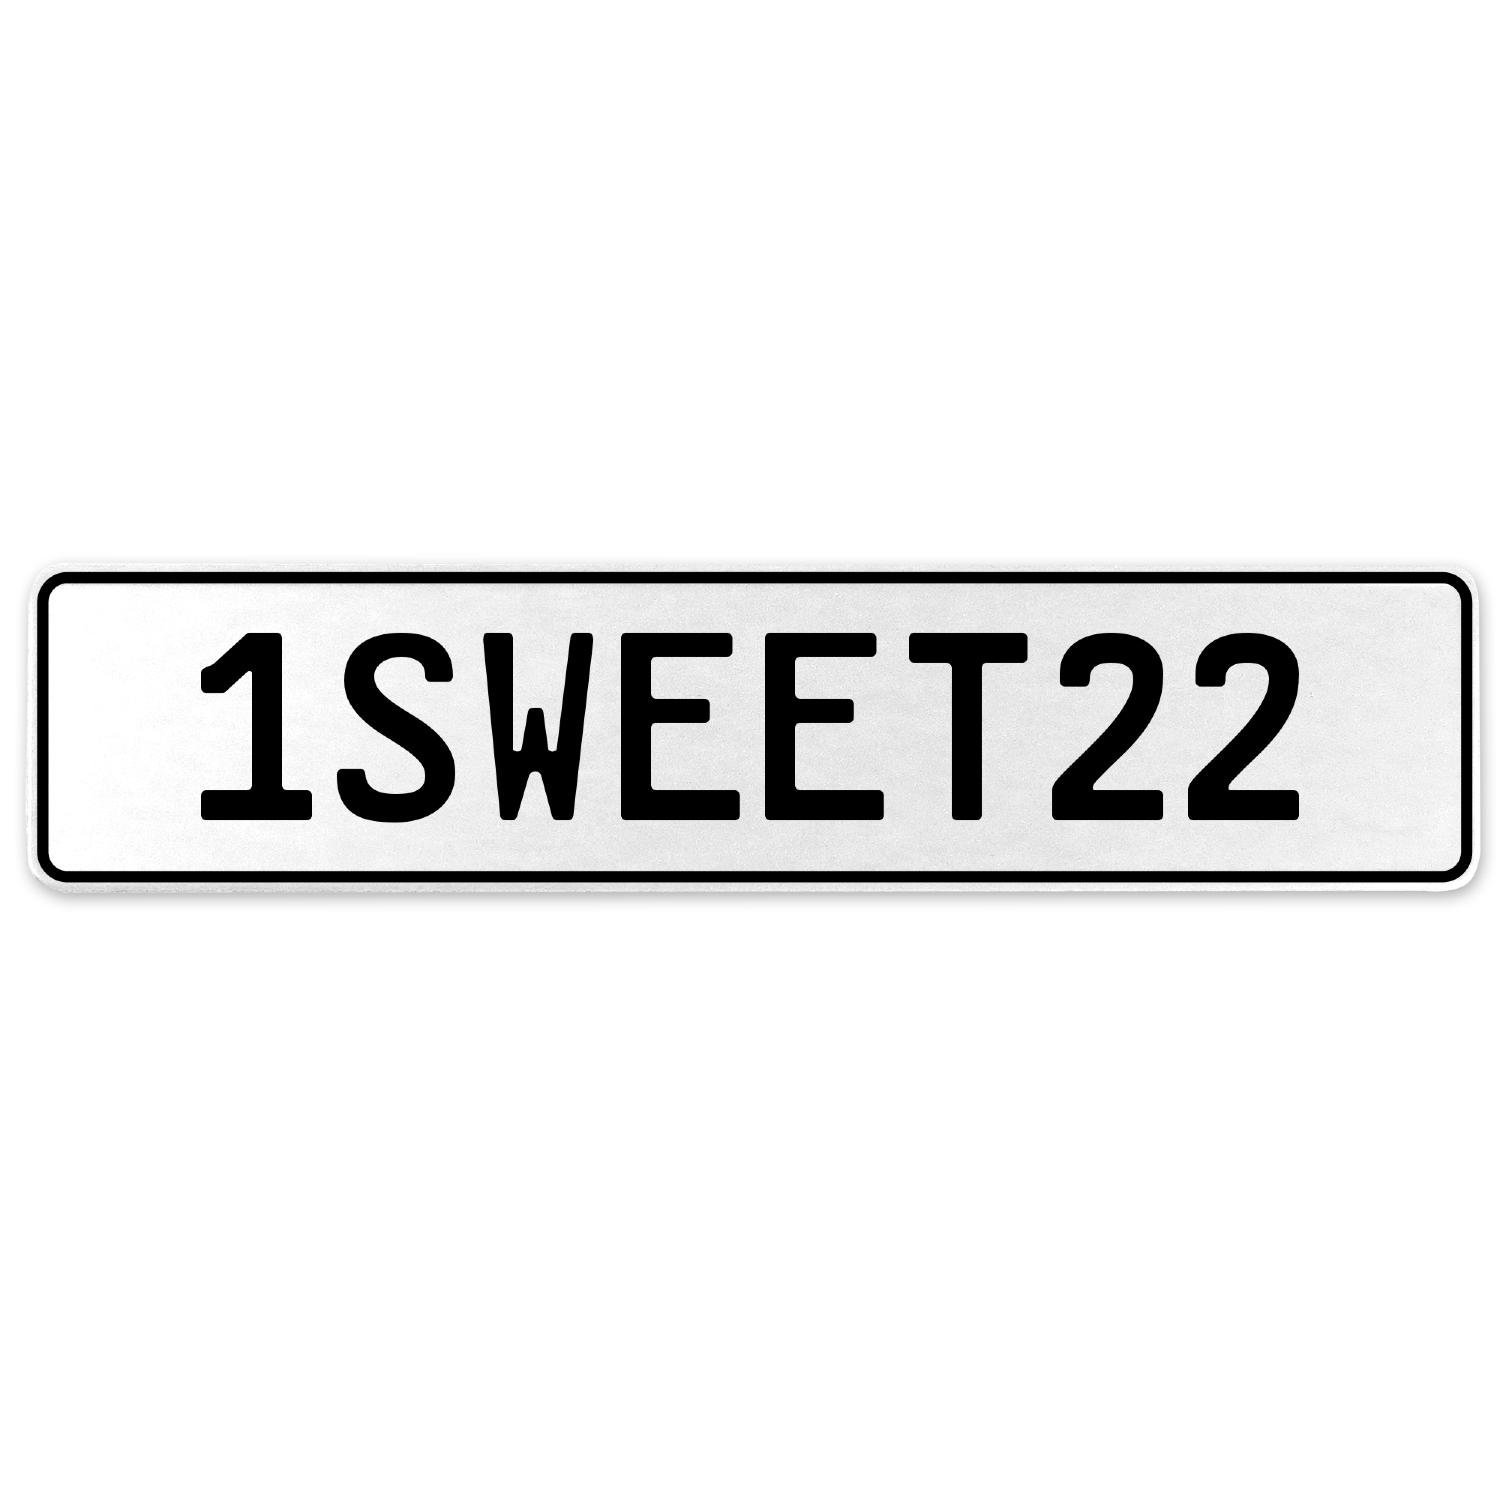 Vintage Parts 554223 1SWEET22 White Stamped Aluminum European License Plate